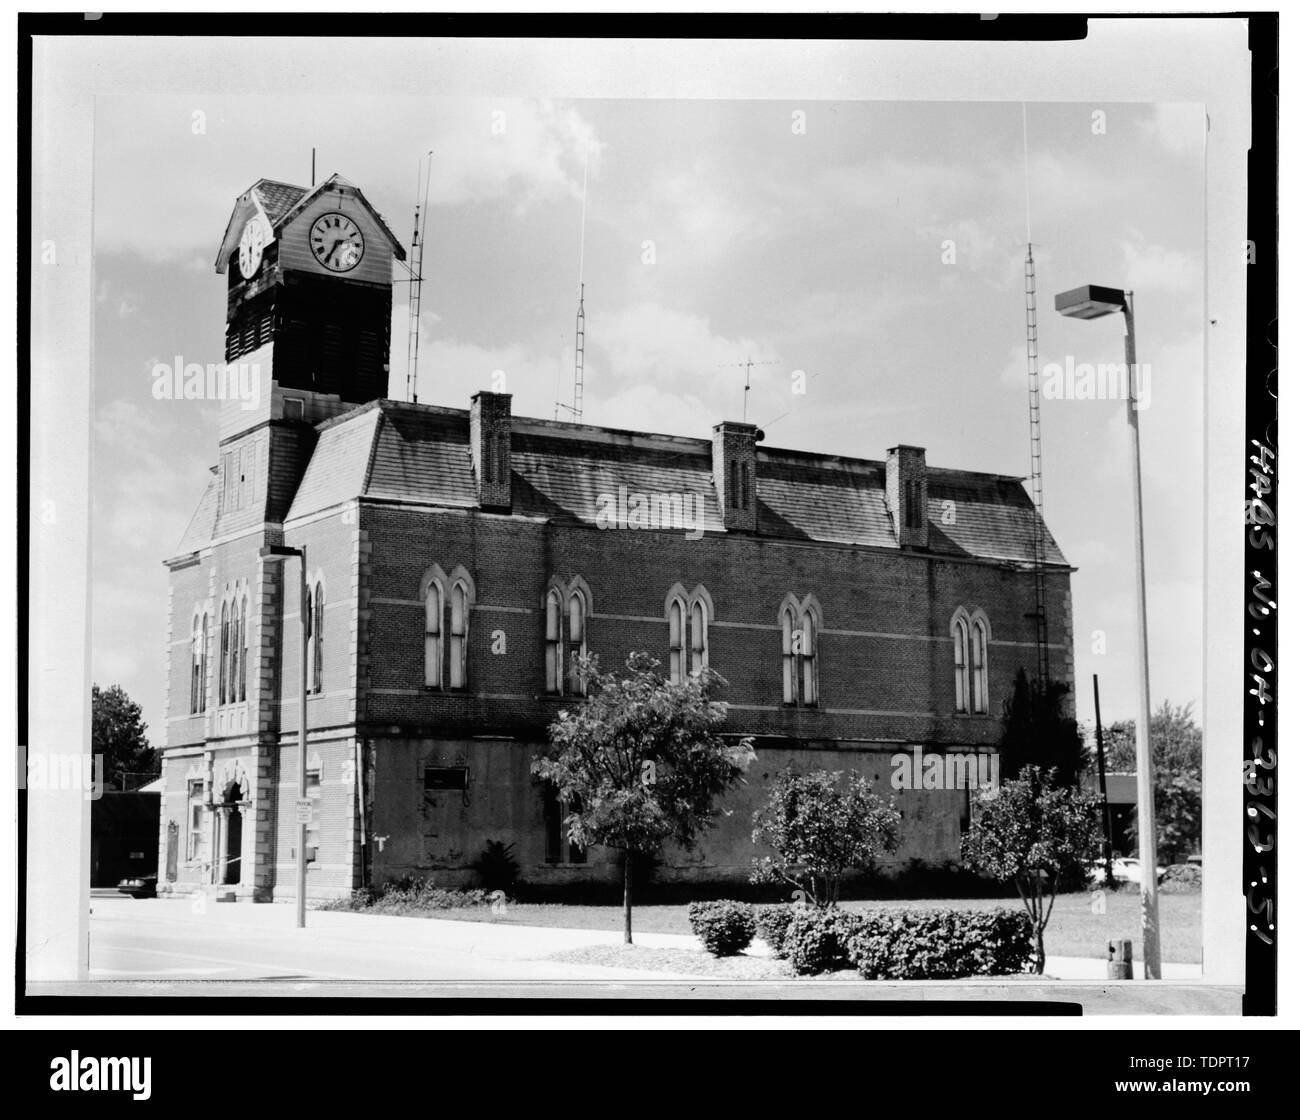 Photography of Photograph (from Planning Resources file, Sept. 1987) SE ELEVATION - Crestline City Hall, Bucyrus and Thoman Streets, Crestline, Crawford County, OH - Stock Image